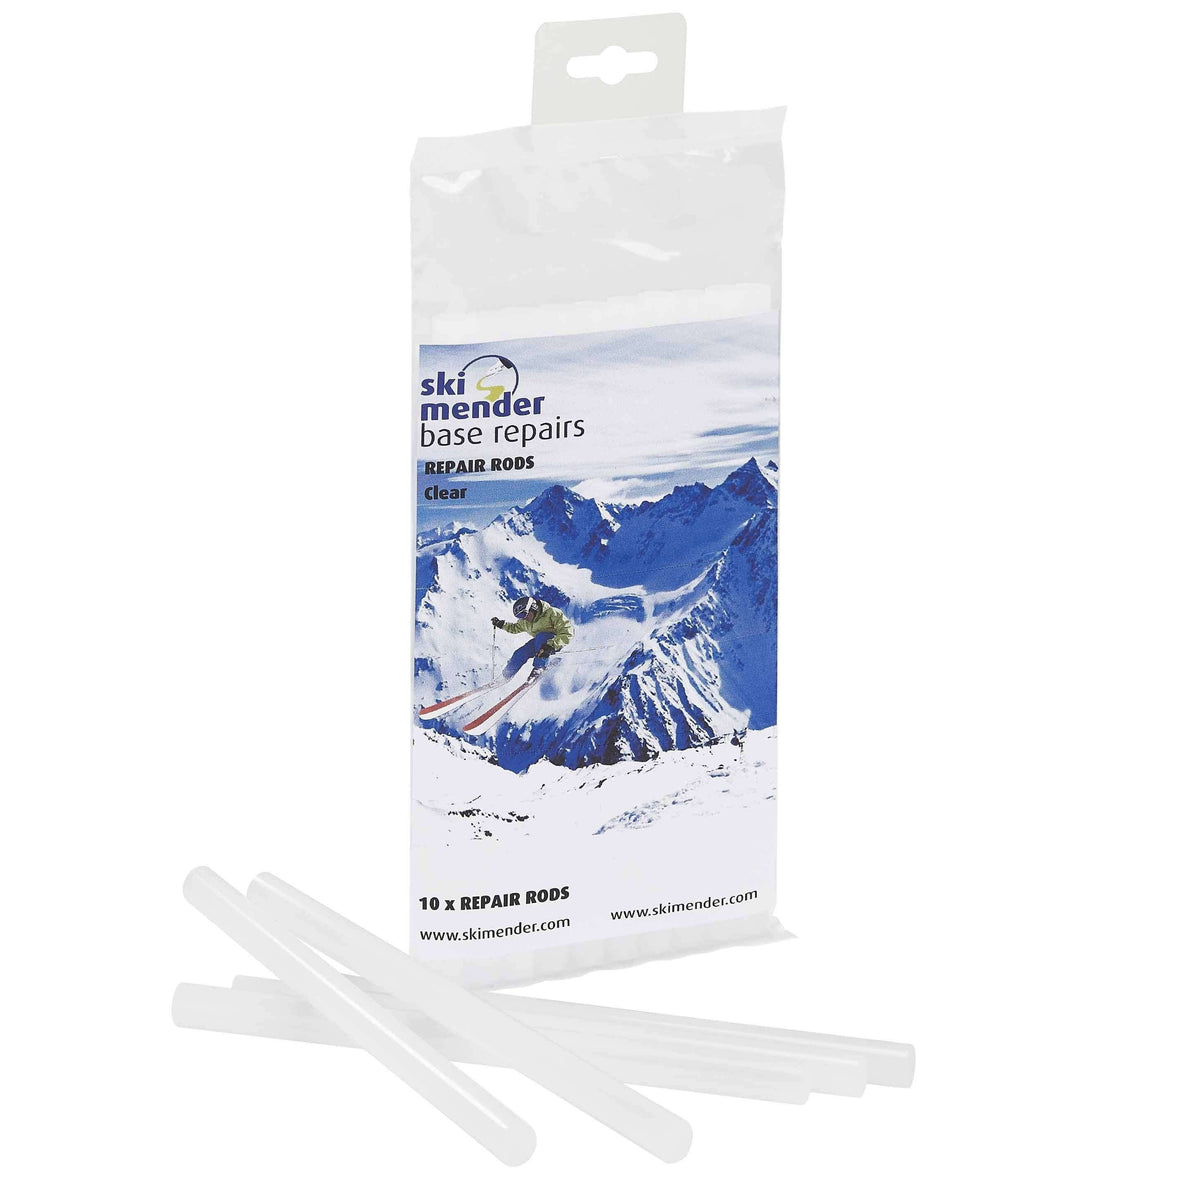 SkiMender Base Repair Ski Mender P-Tex Clear Repair Rods for Base Repair Guns - 10 Pack